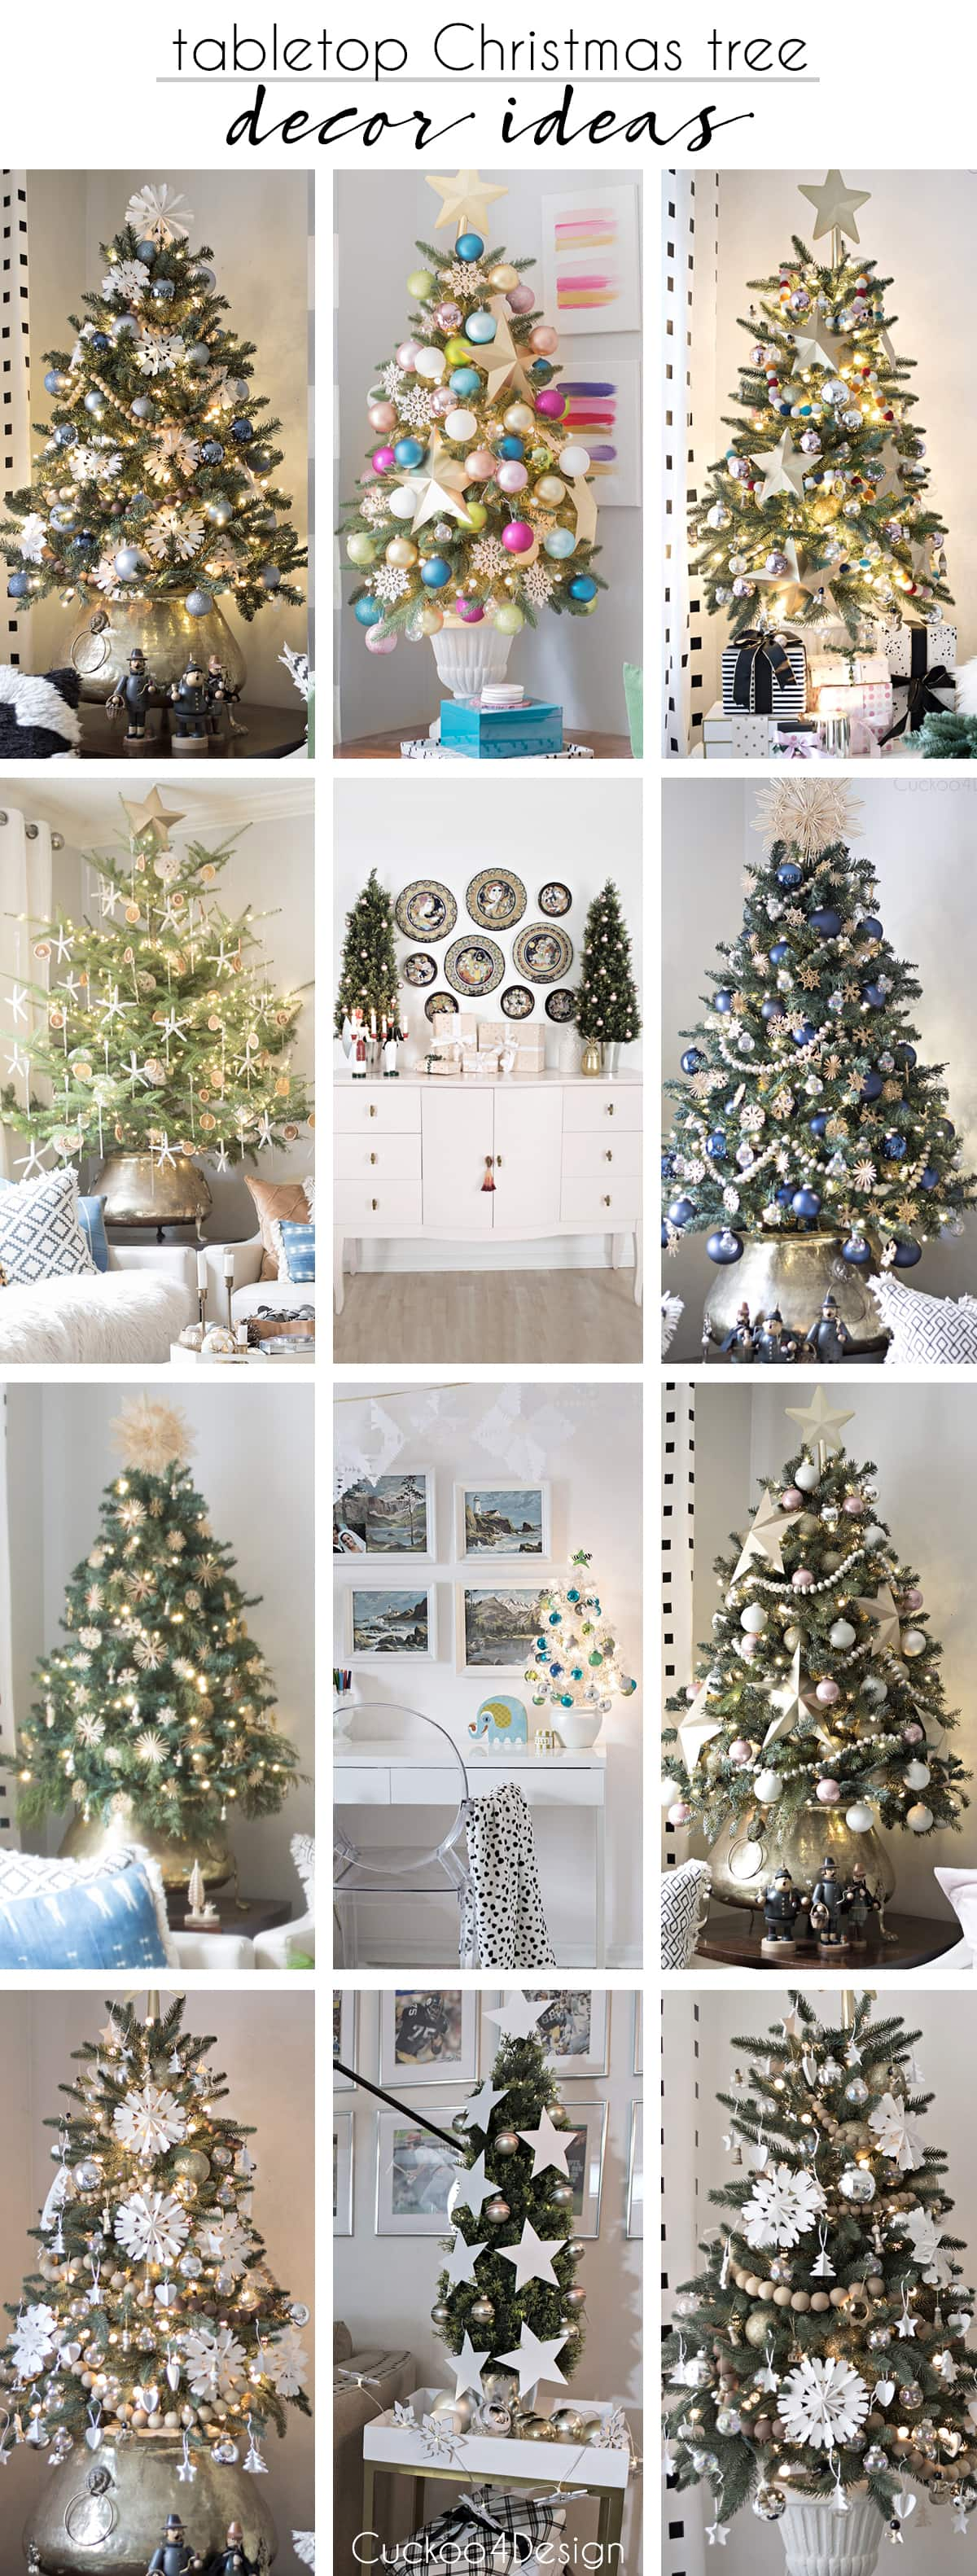 Our Large Live Tabletop Christmas Tree And Home Tour Cuckoo4design